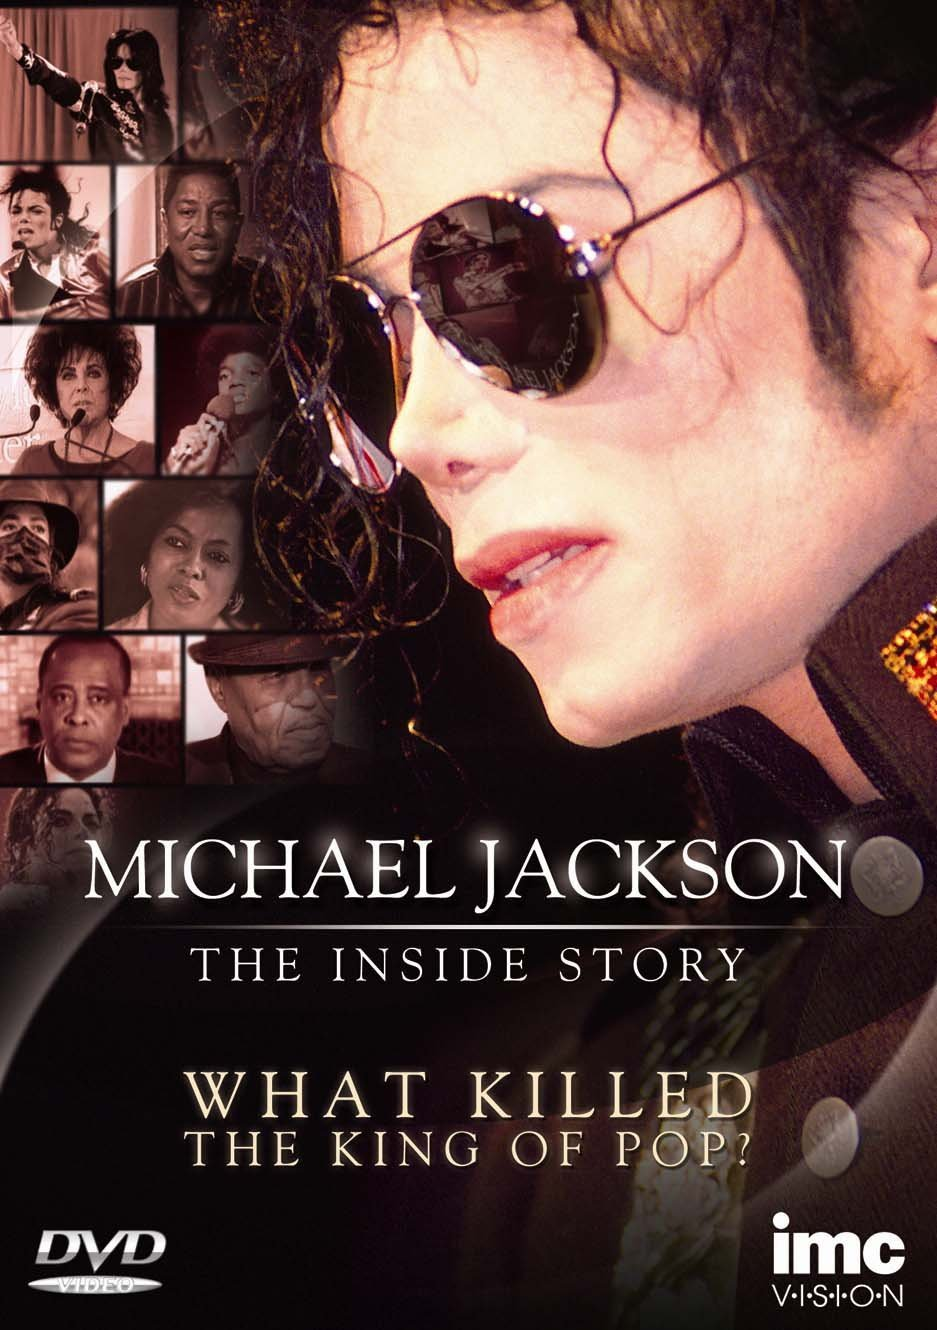 Michael Jackson The Inside Story What Killed The King Of Pop?